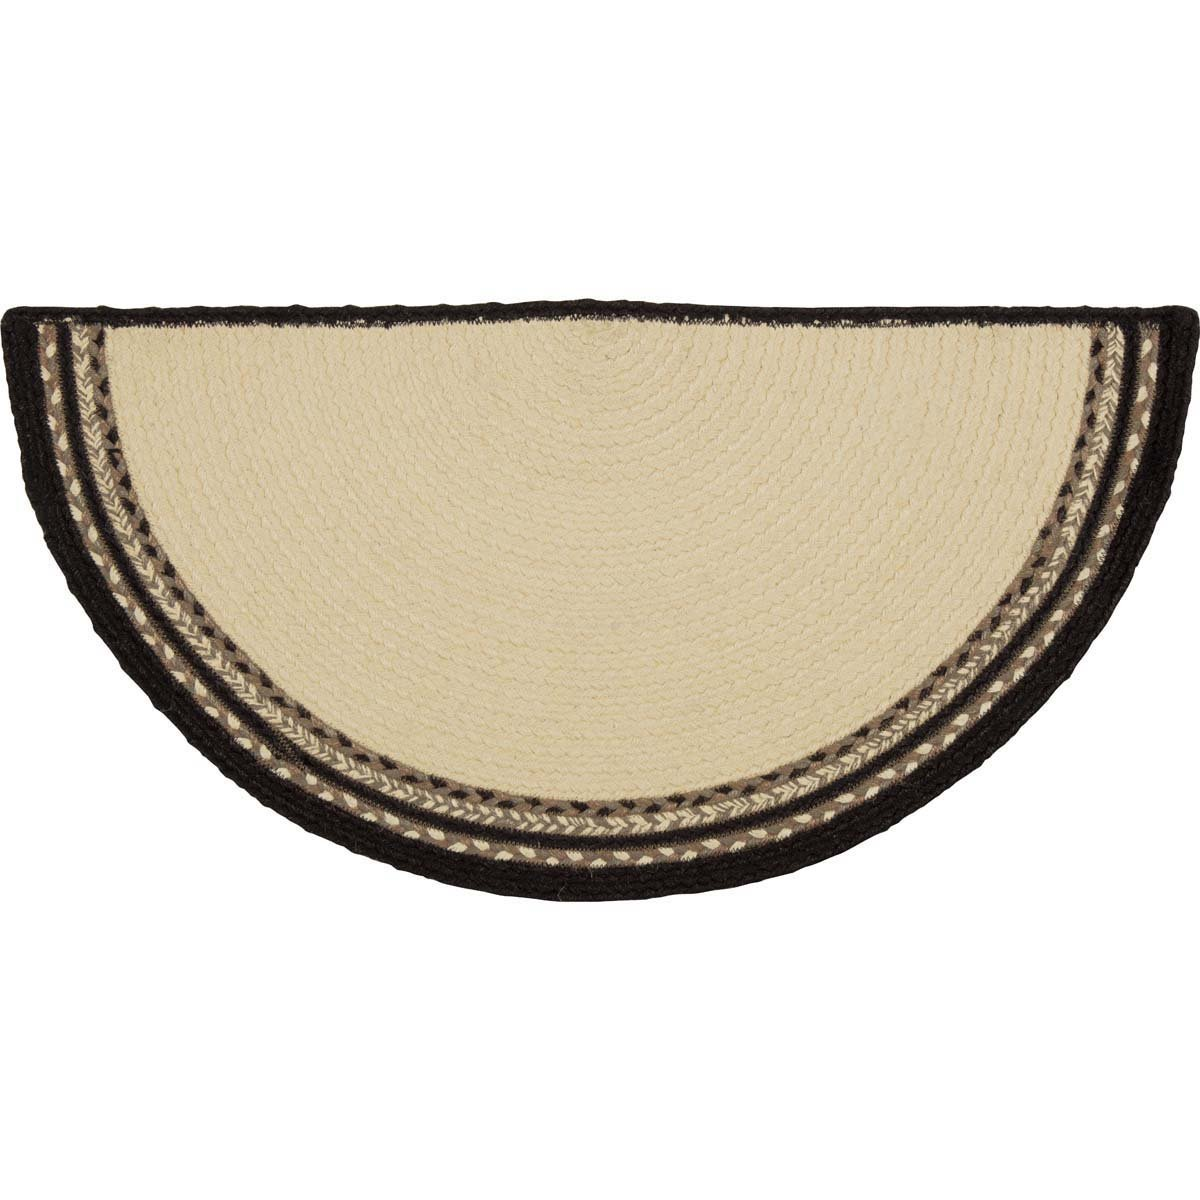 Sawyer Mill Charcoal Poultry Jute Rug Half Circle